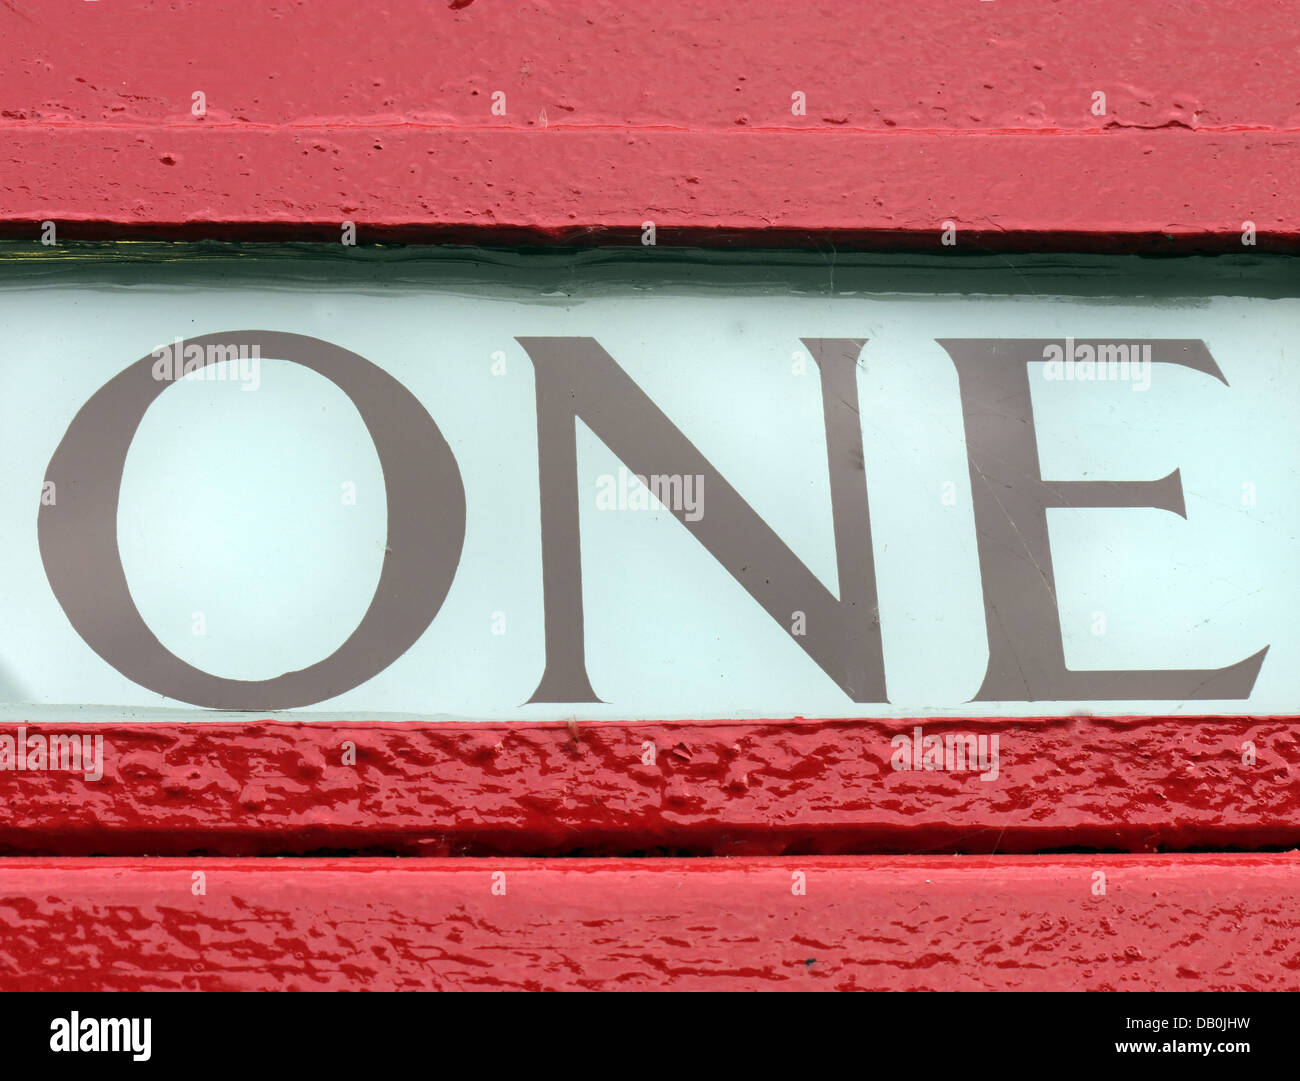 Detail,of,One,(1),from,a,red,British,classic,telephone,box,numberone,first,integer,white,black,whiteblackred,simple,GB,great,britain,english,old,fashioned,eccentric,England,icon,iconic,design,Gotonysmith,Buy Pictures of,Buy Images Of